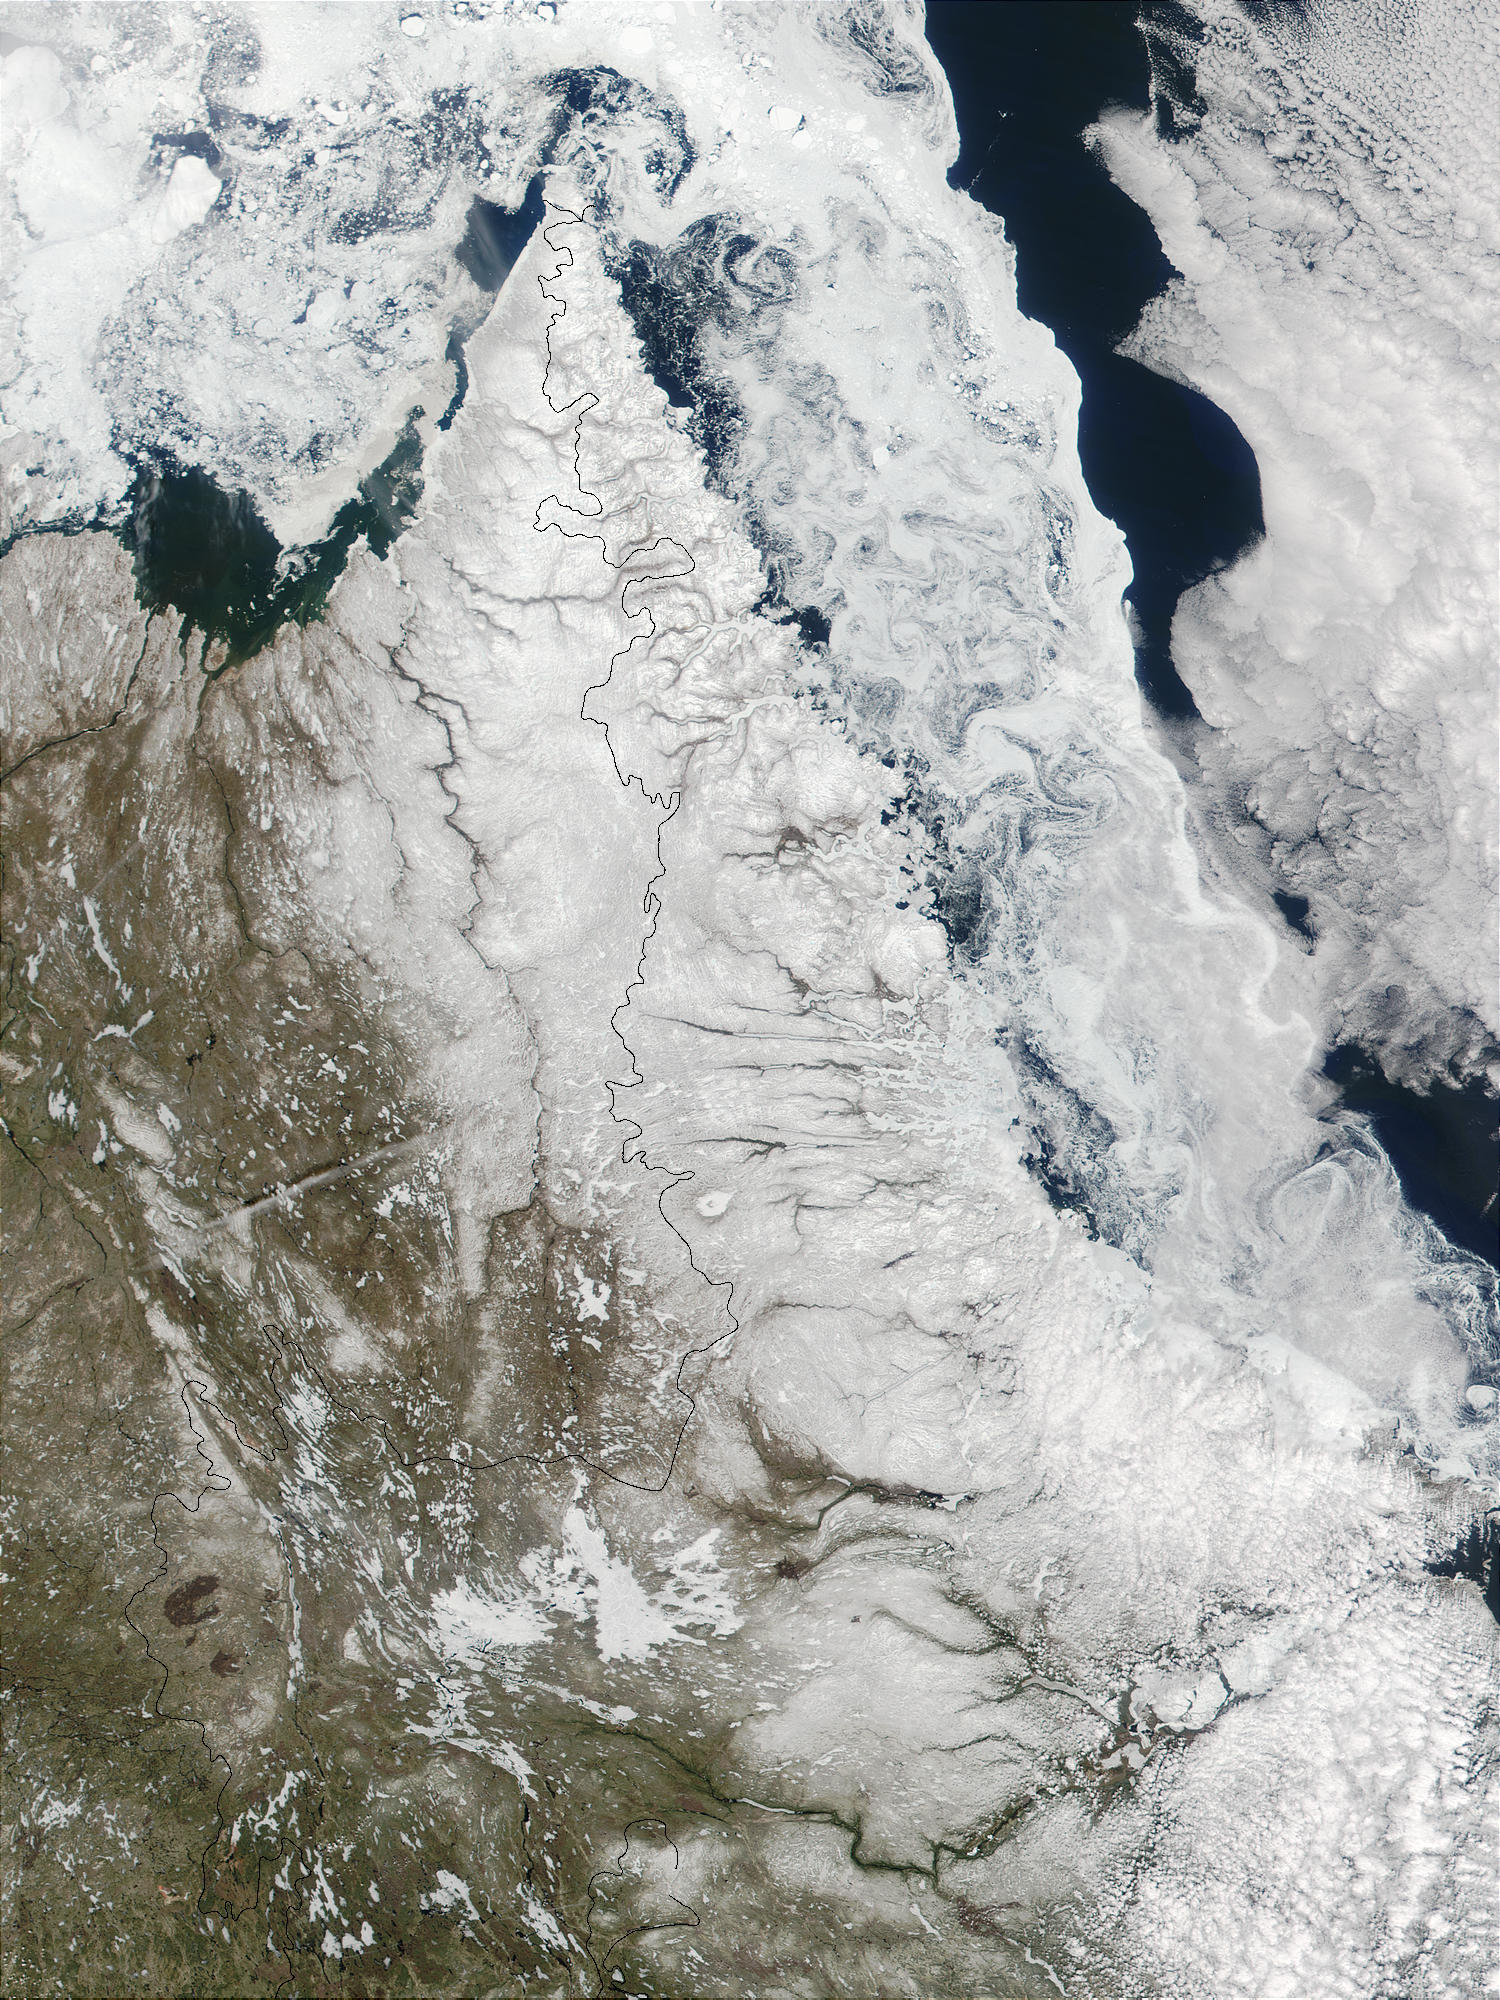 Labrador and Northeast Quebec, Canada - related image preview